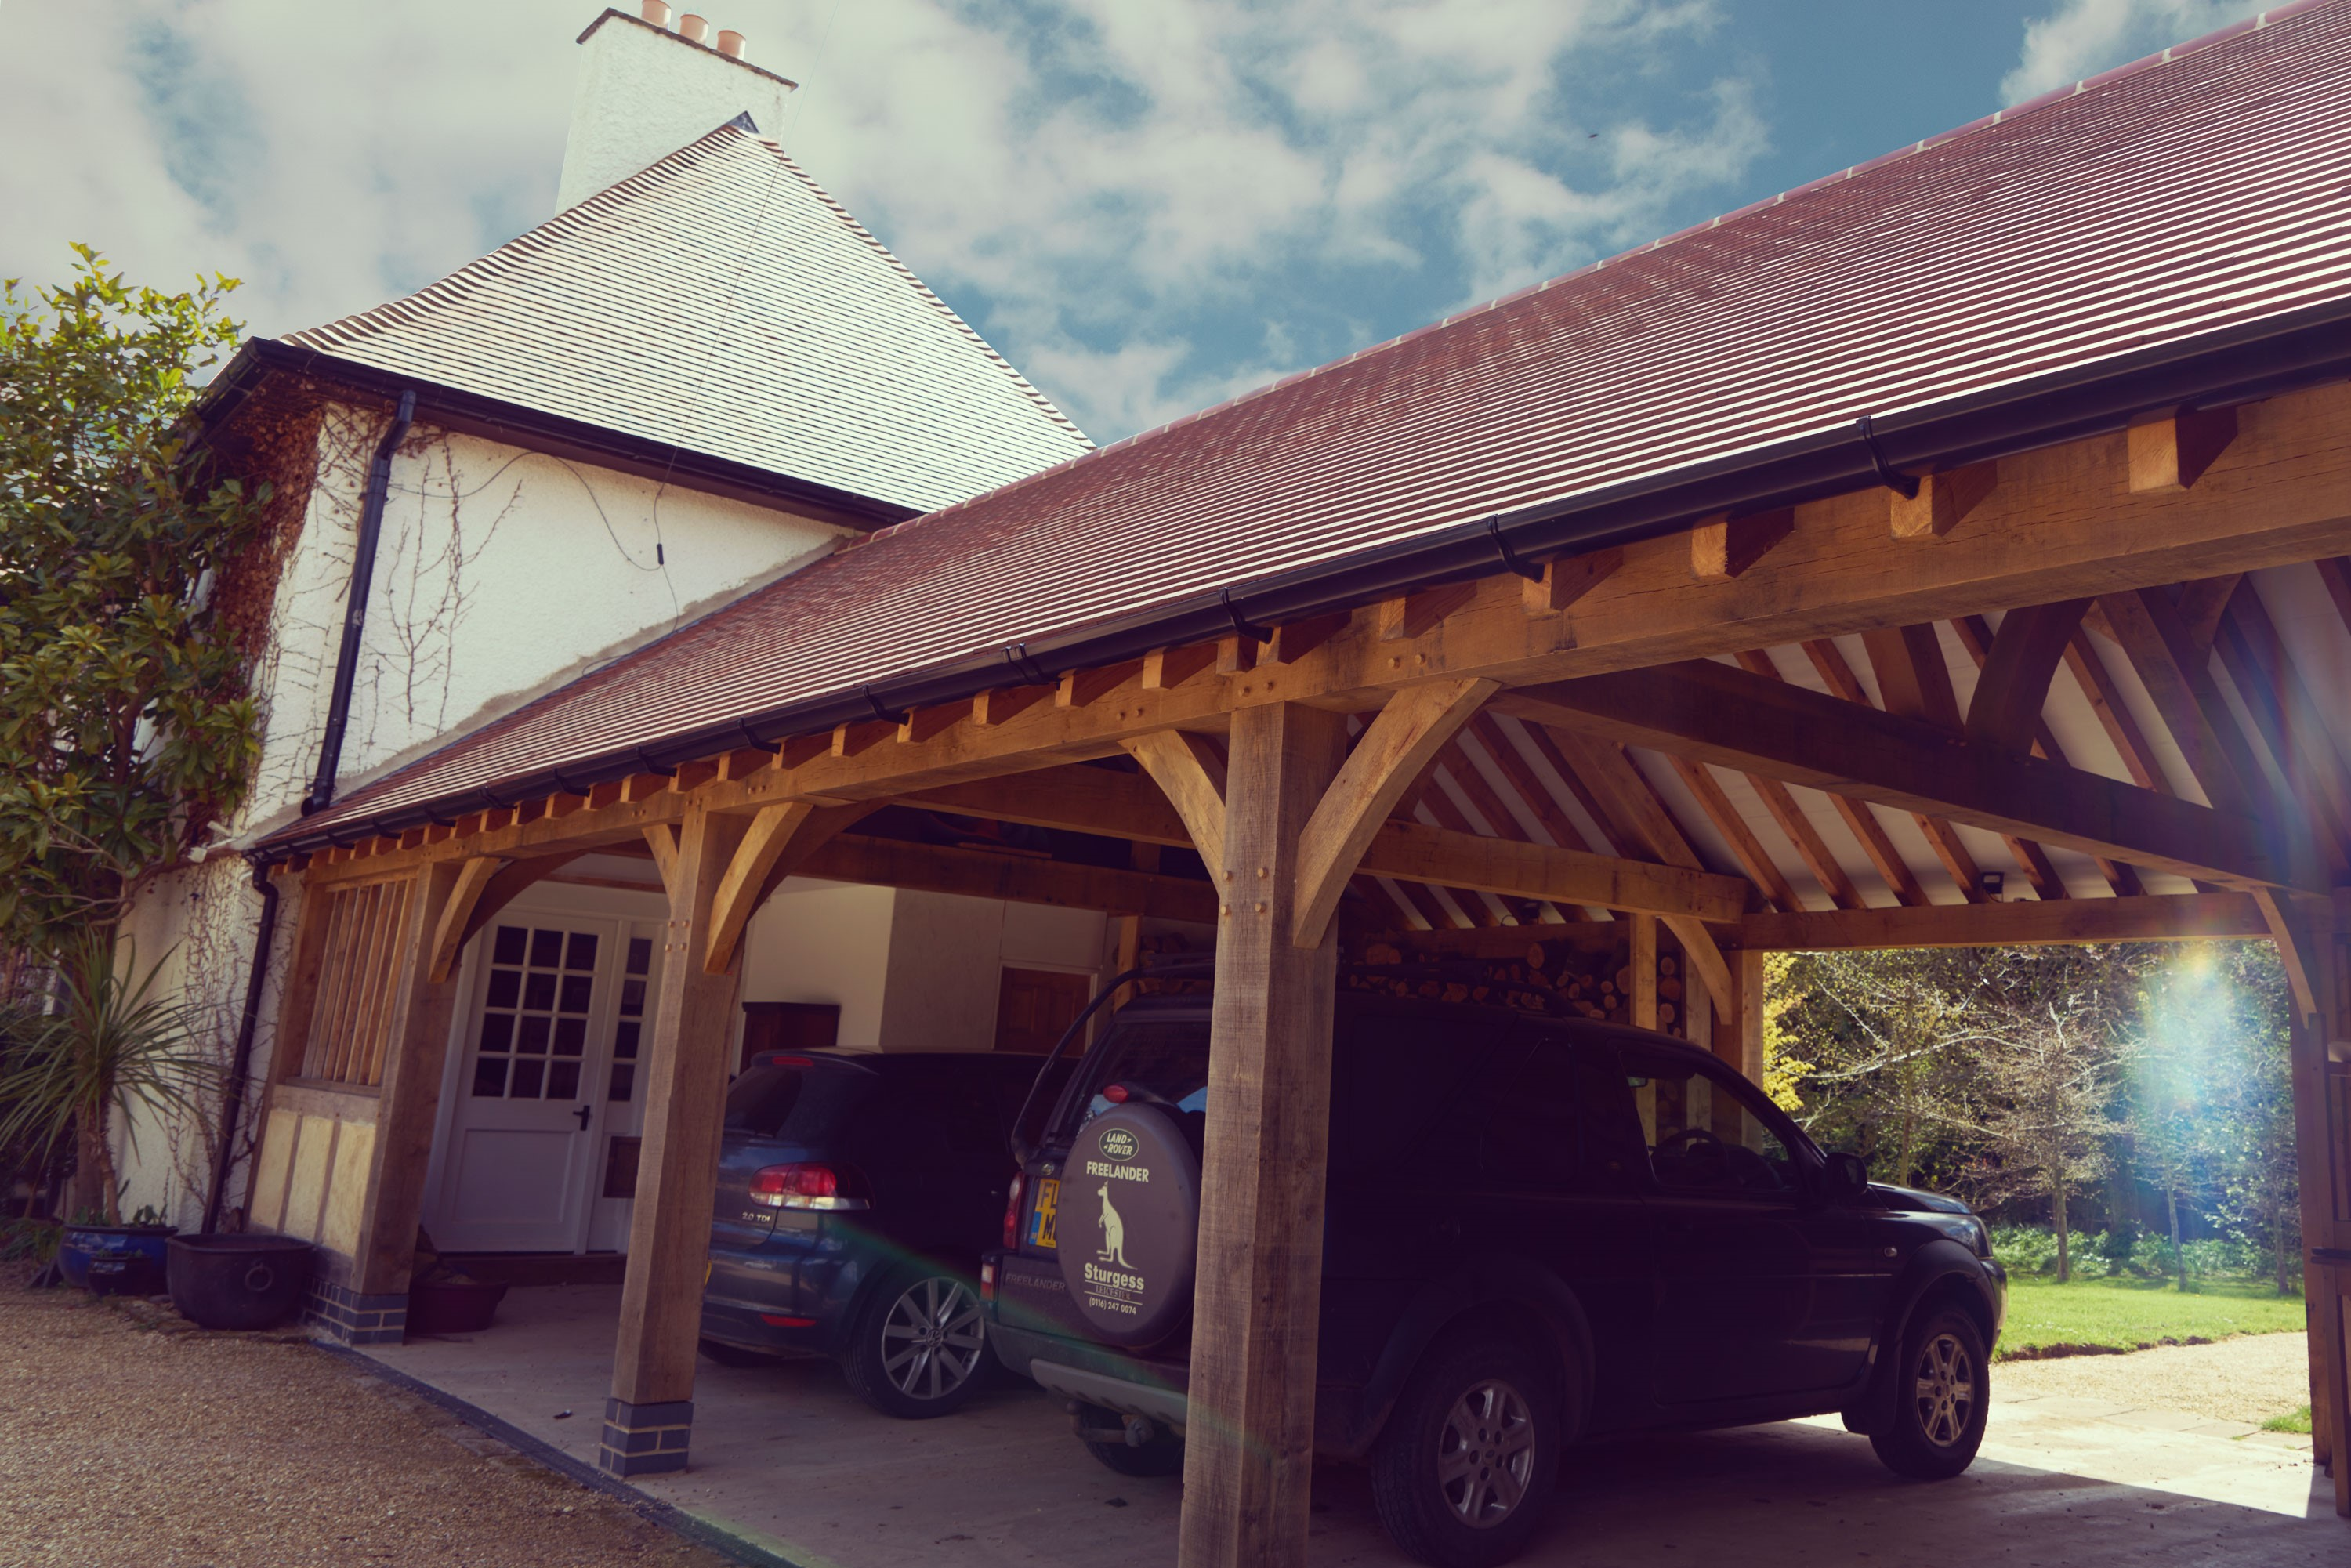 Options for storing your car when at home.